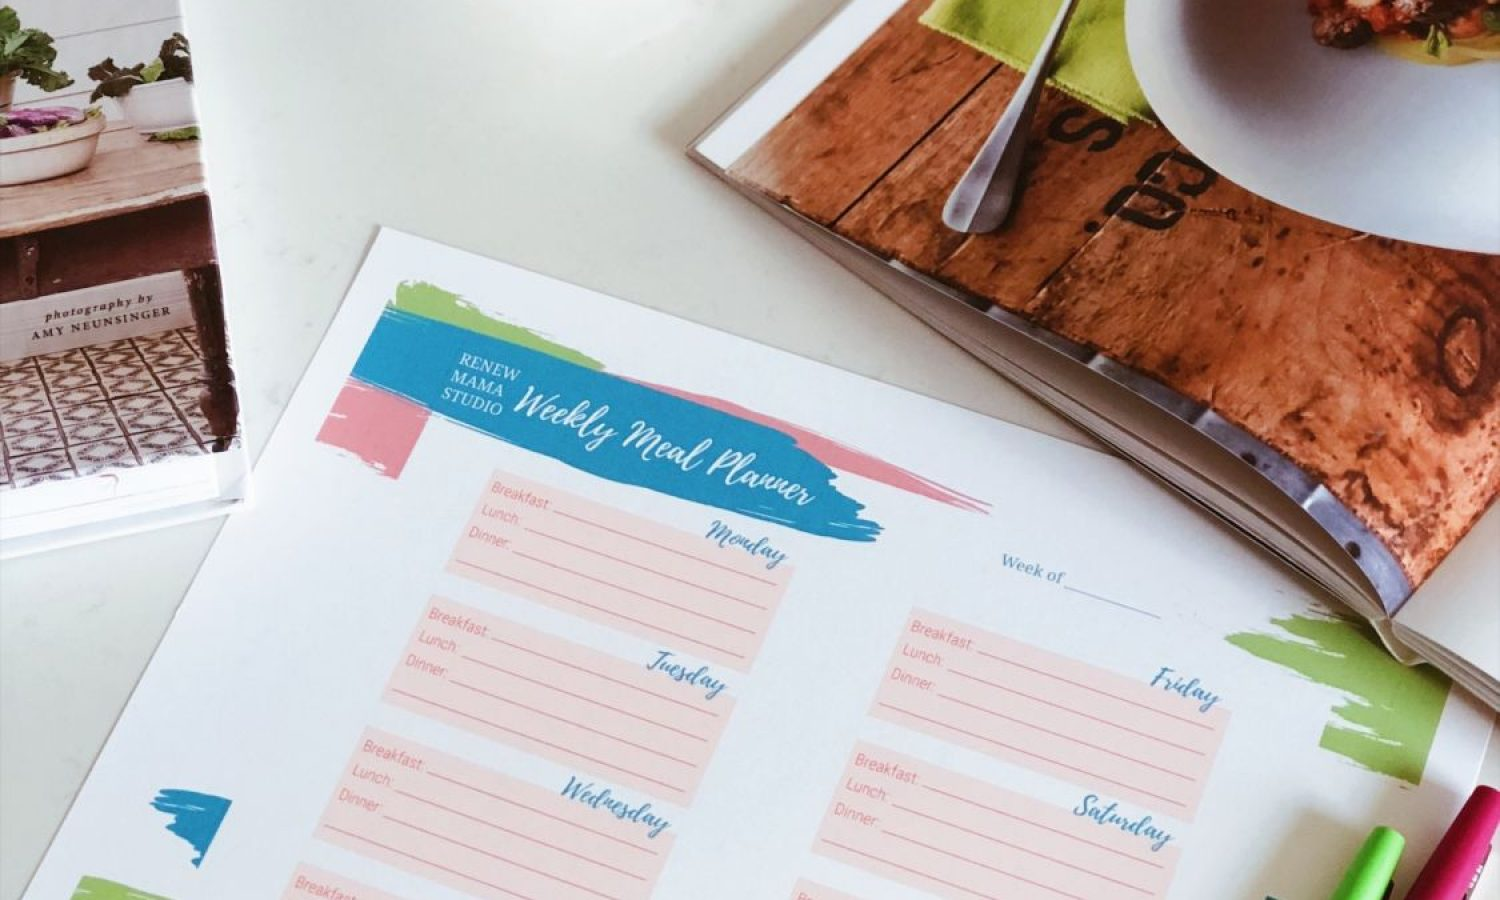 paper meal planner and recipe book